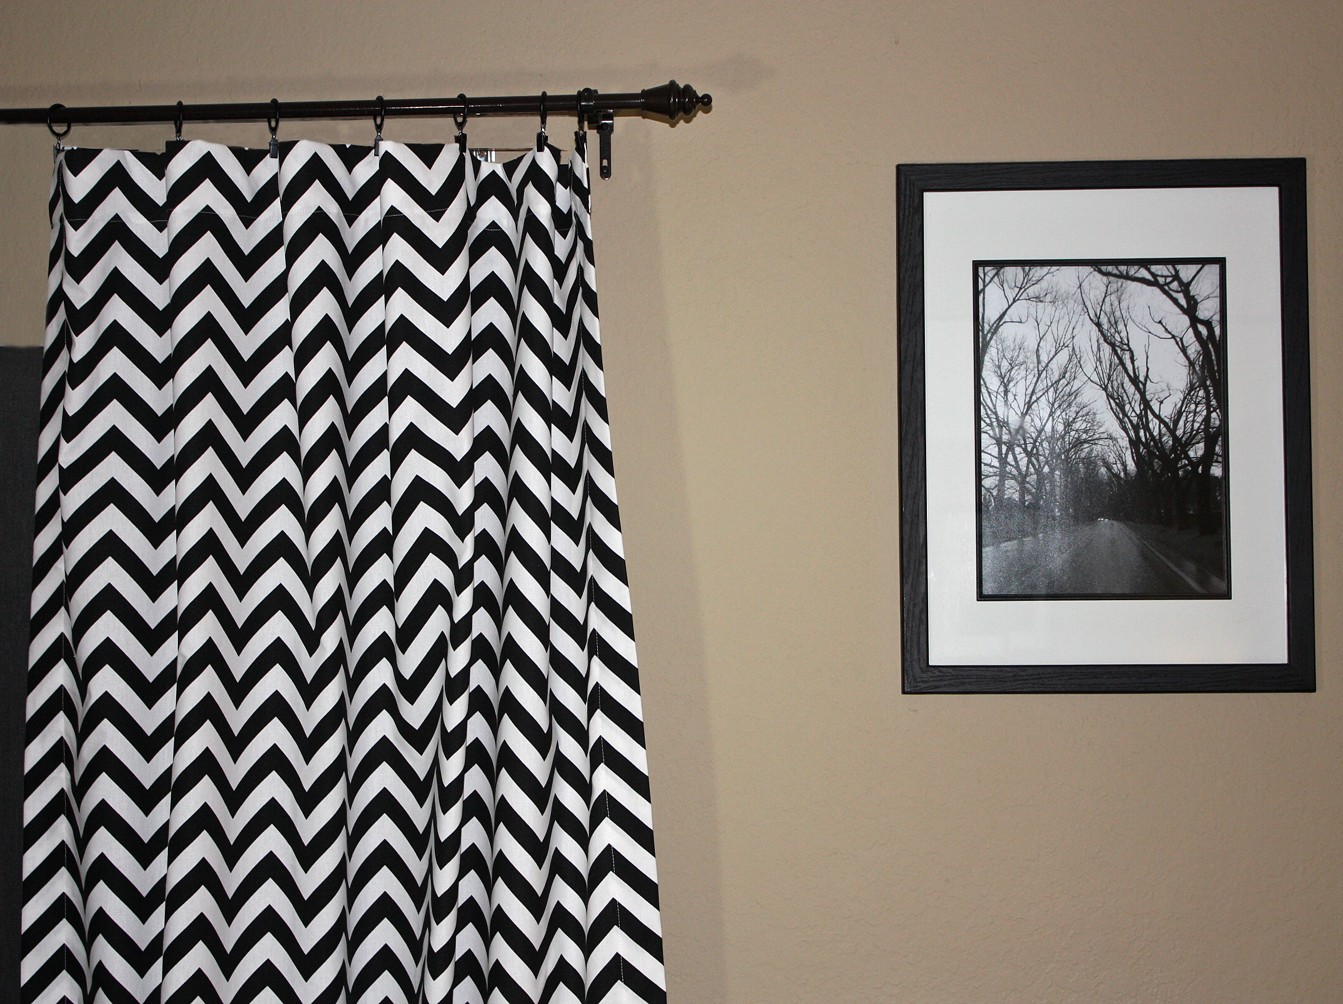 White curtain wallpaper - Black And White Curtain 23 Free Wallpaper